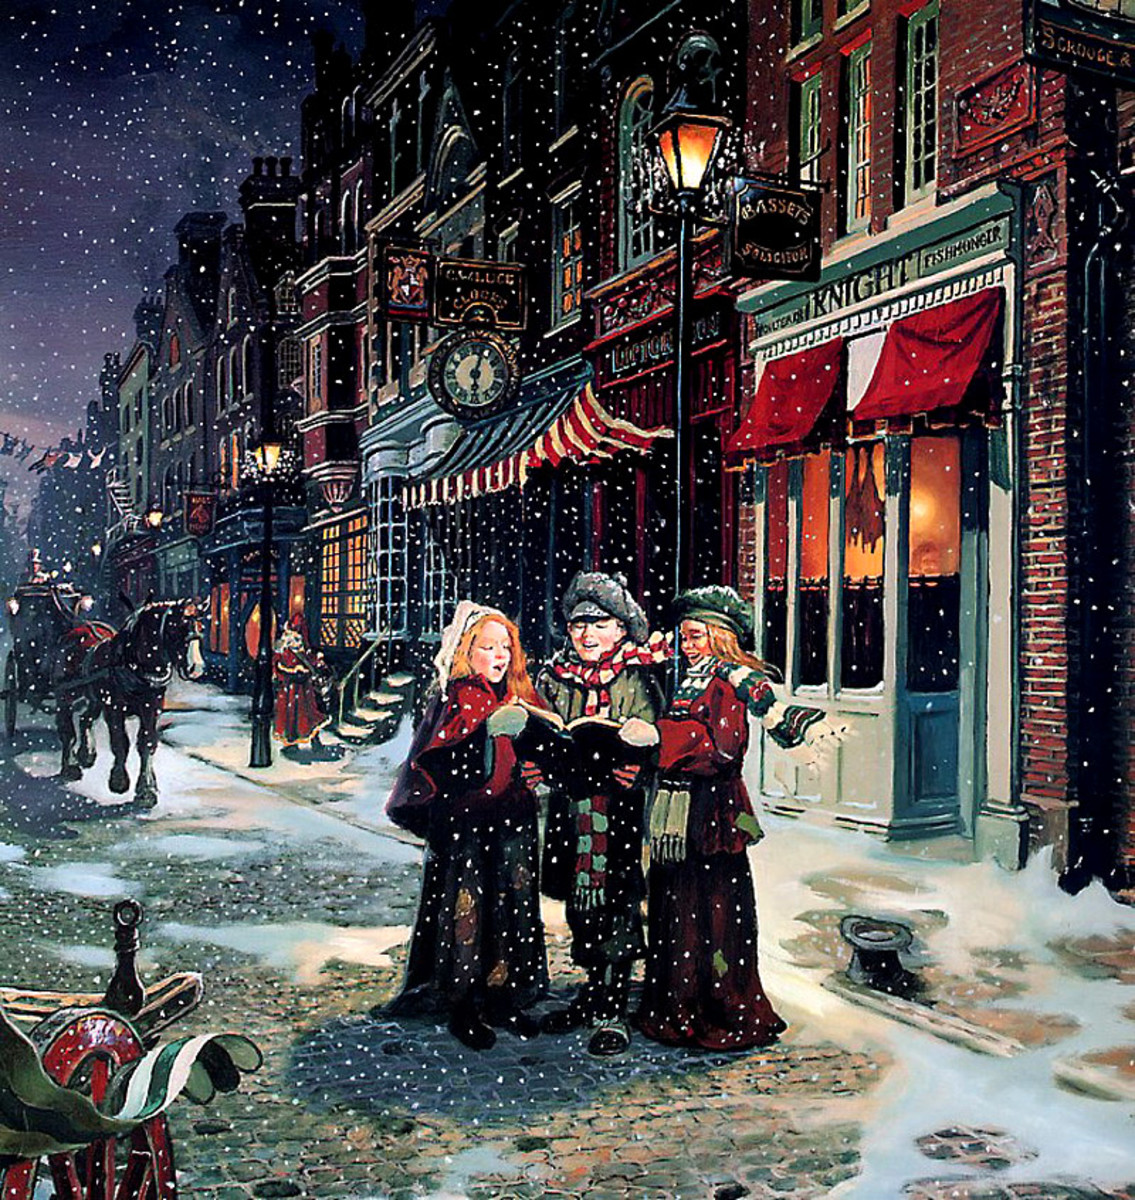 30 Favourite Christmas Carols - Their Origins and History | HubPages